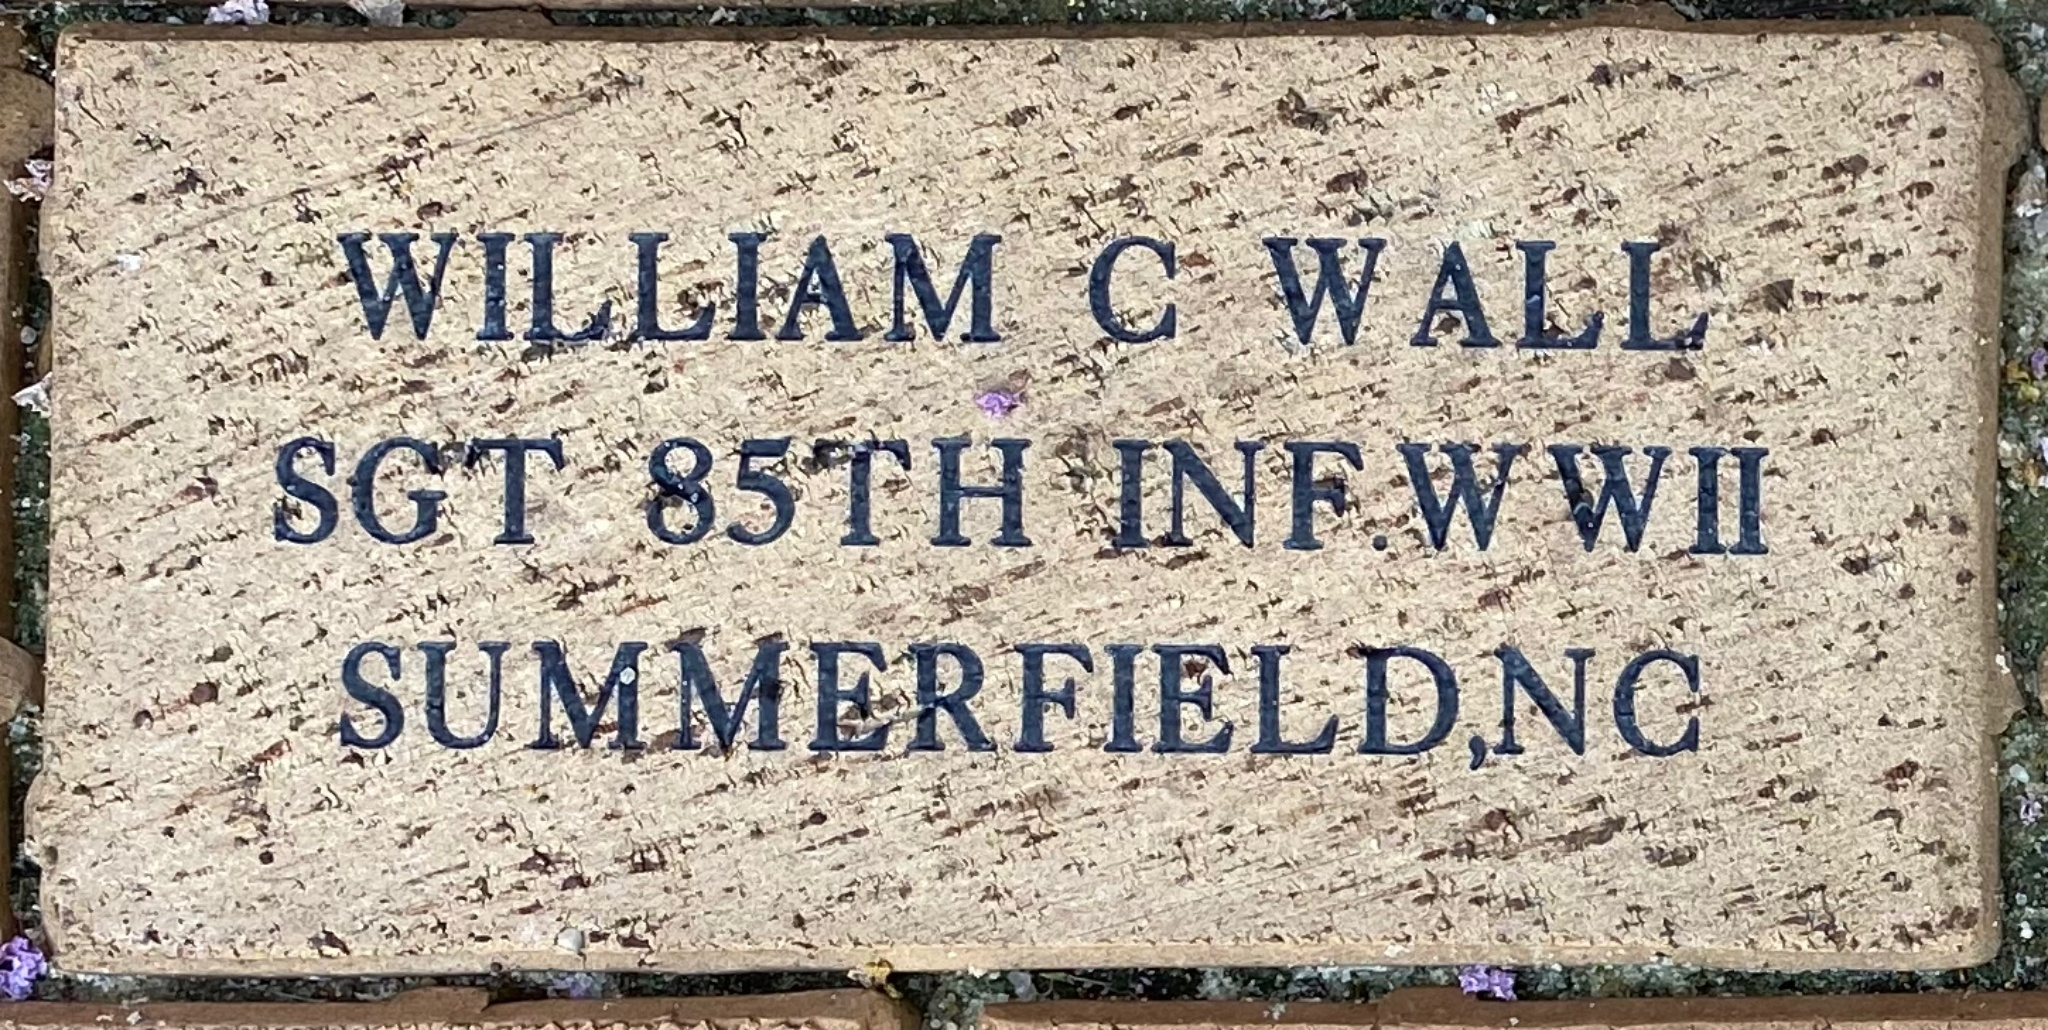 WILLIAM C WALL SGT 85TH INF WWII SUMMERFIELD,NC